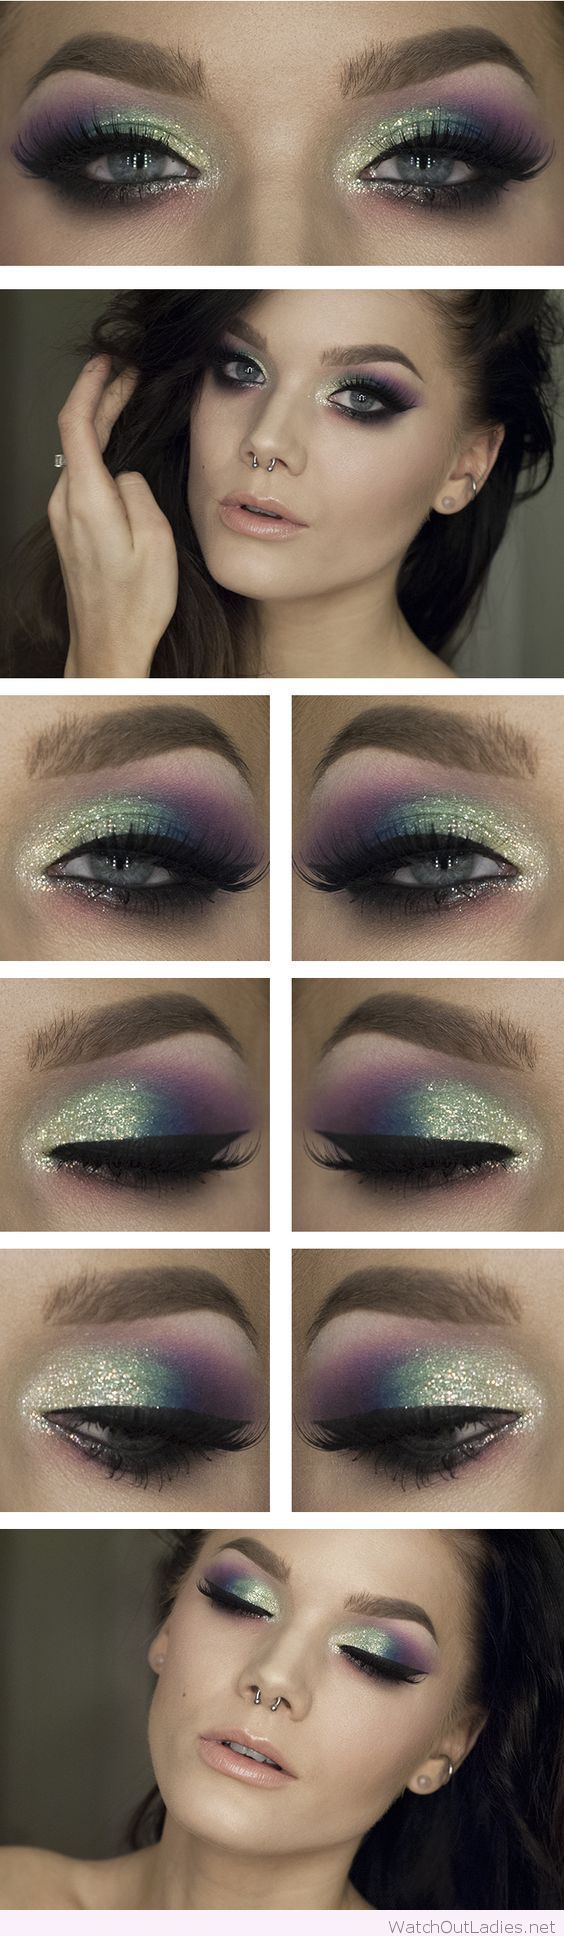 Green and purple with glitter eye makeup